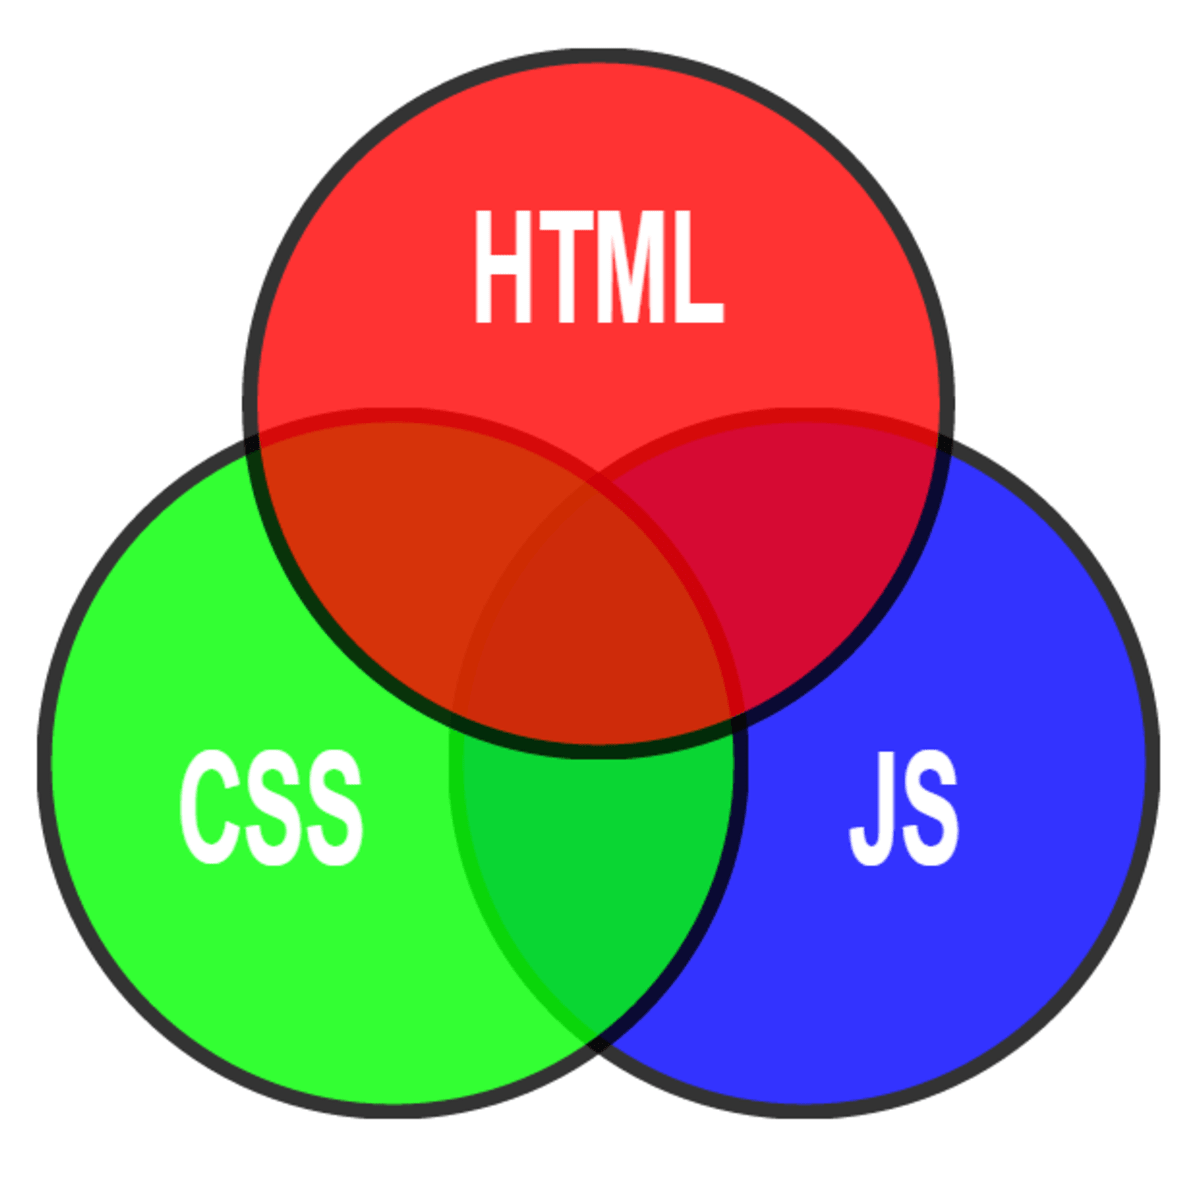 Making javascript work with HTML